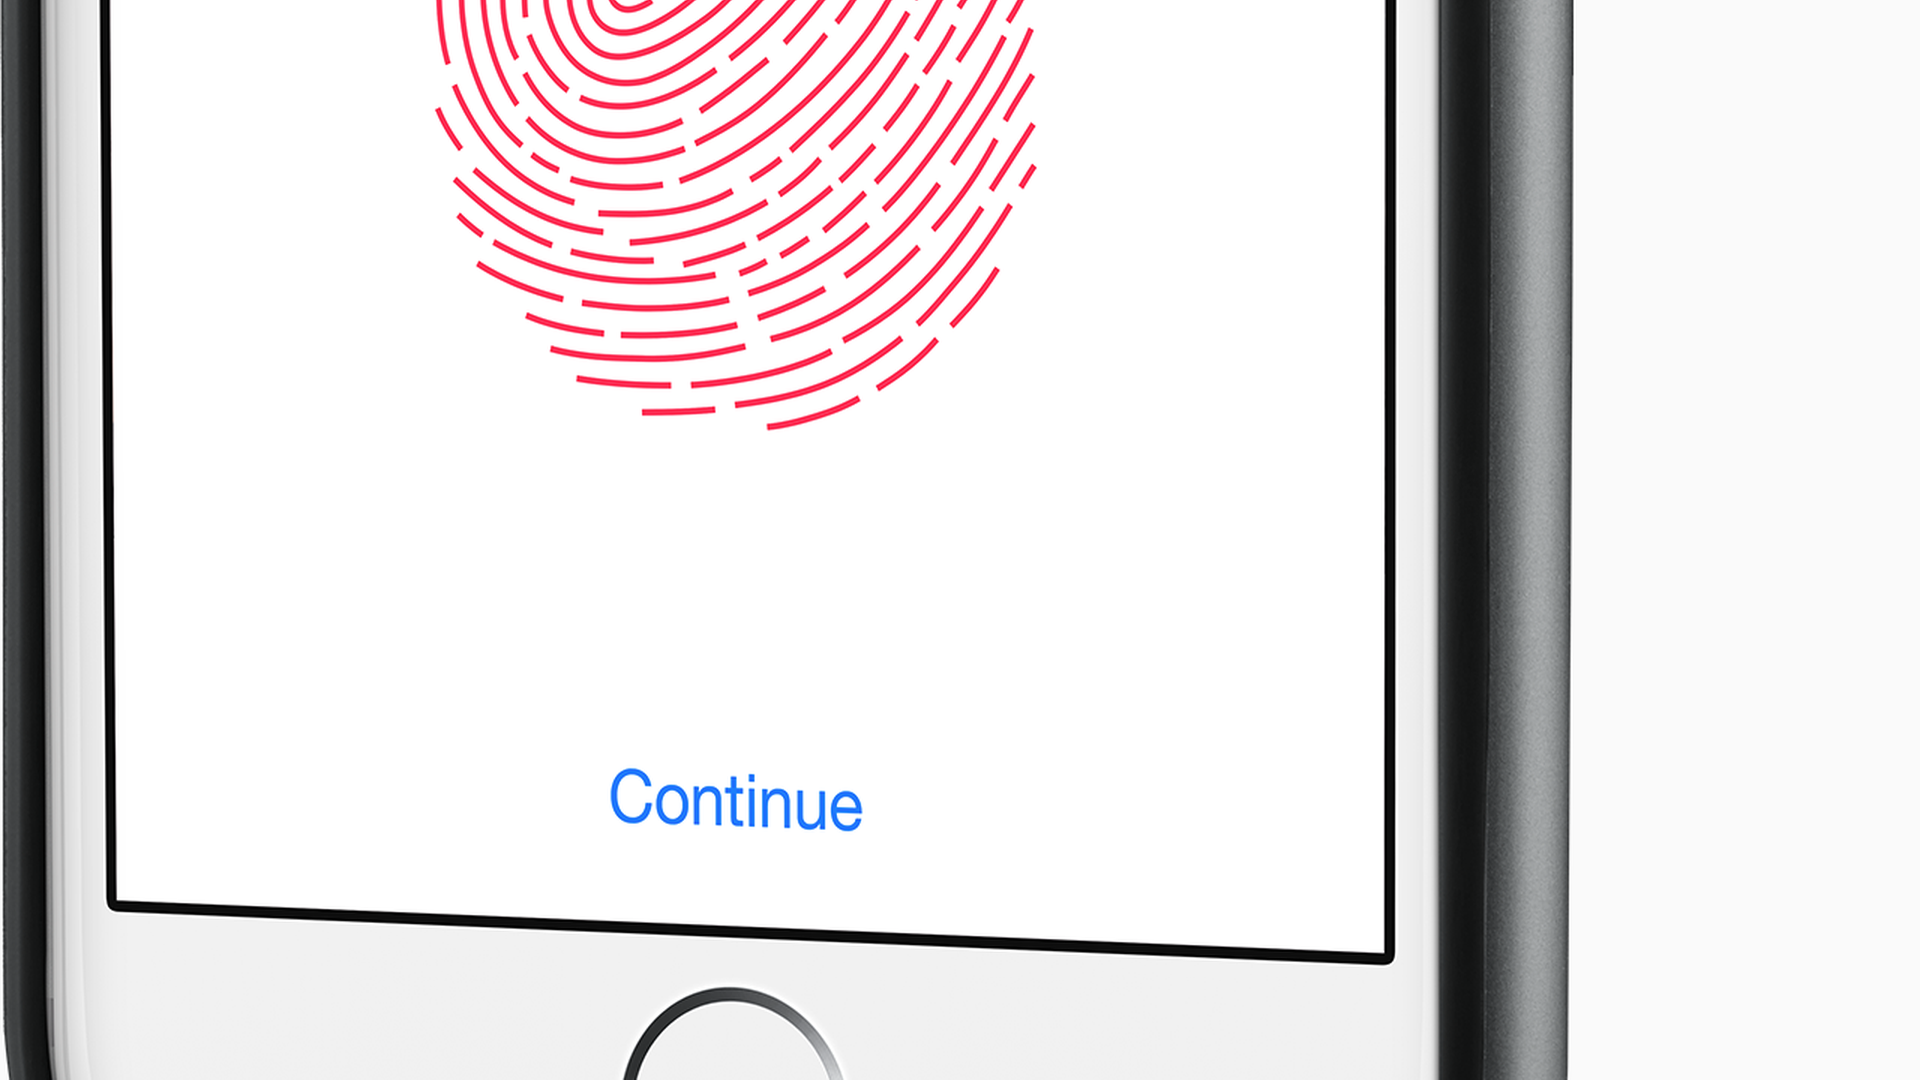 An image of an iPhone with TouchID fingerprint recognition